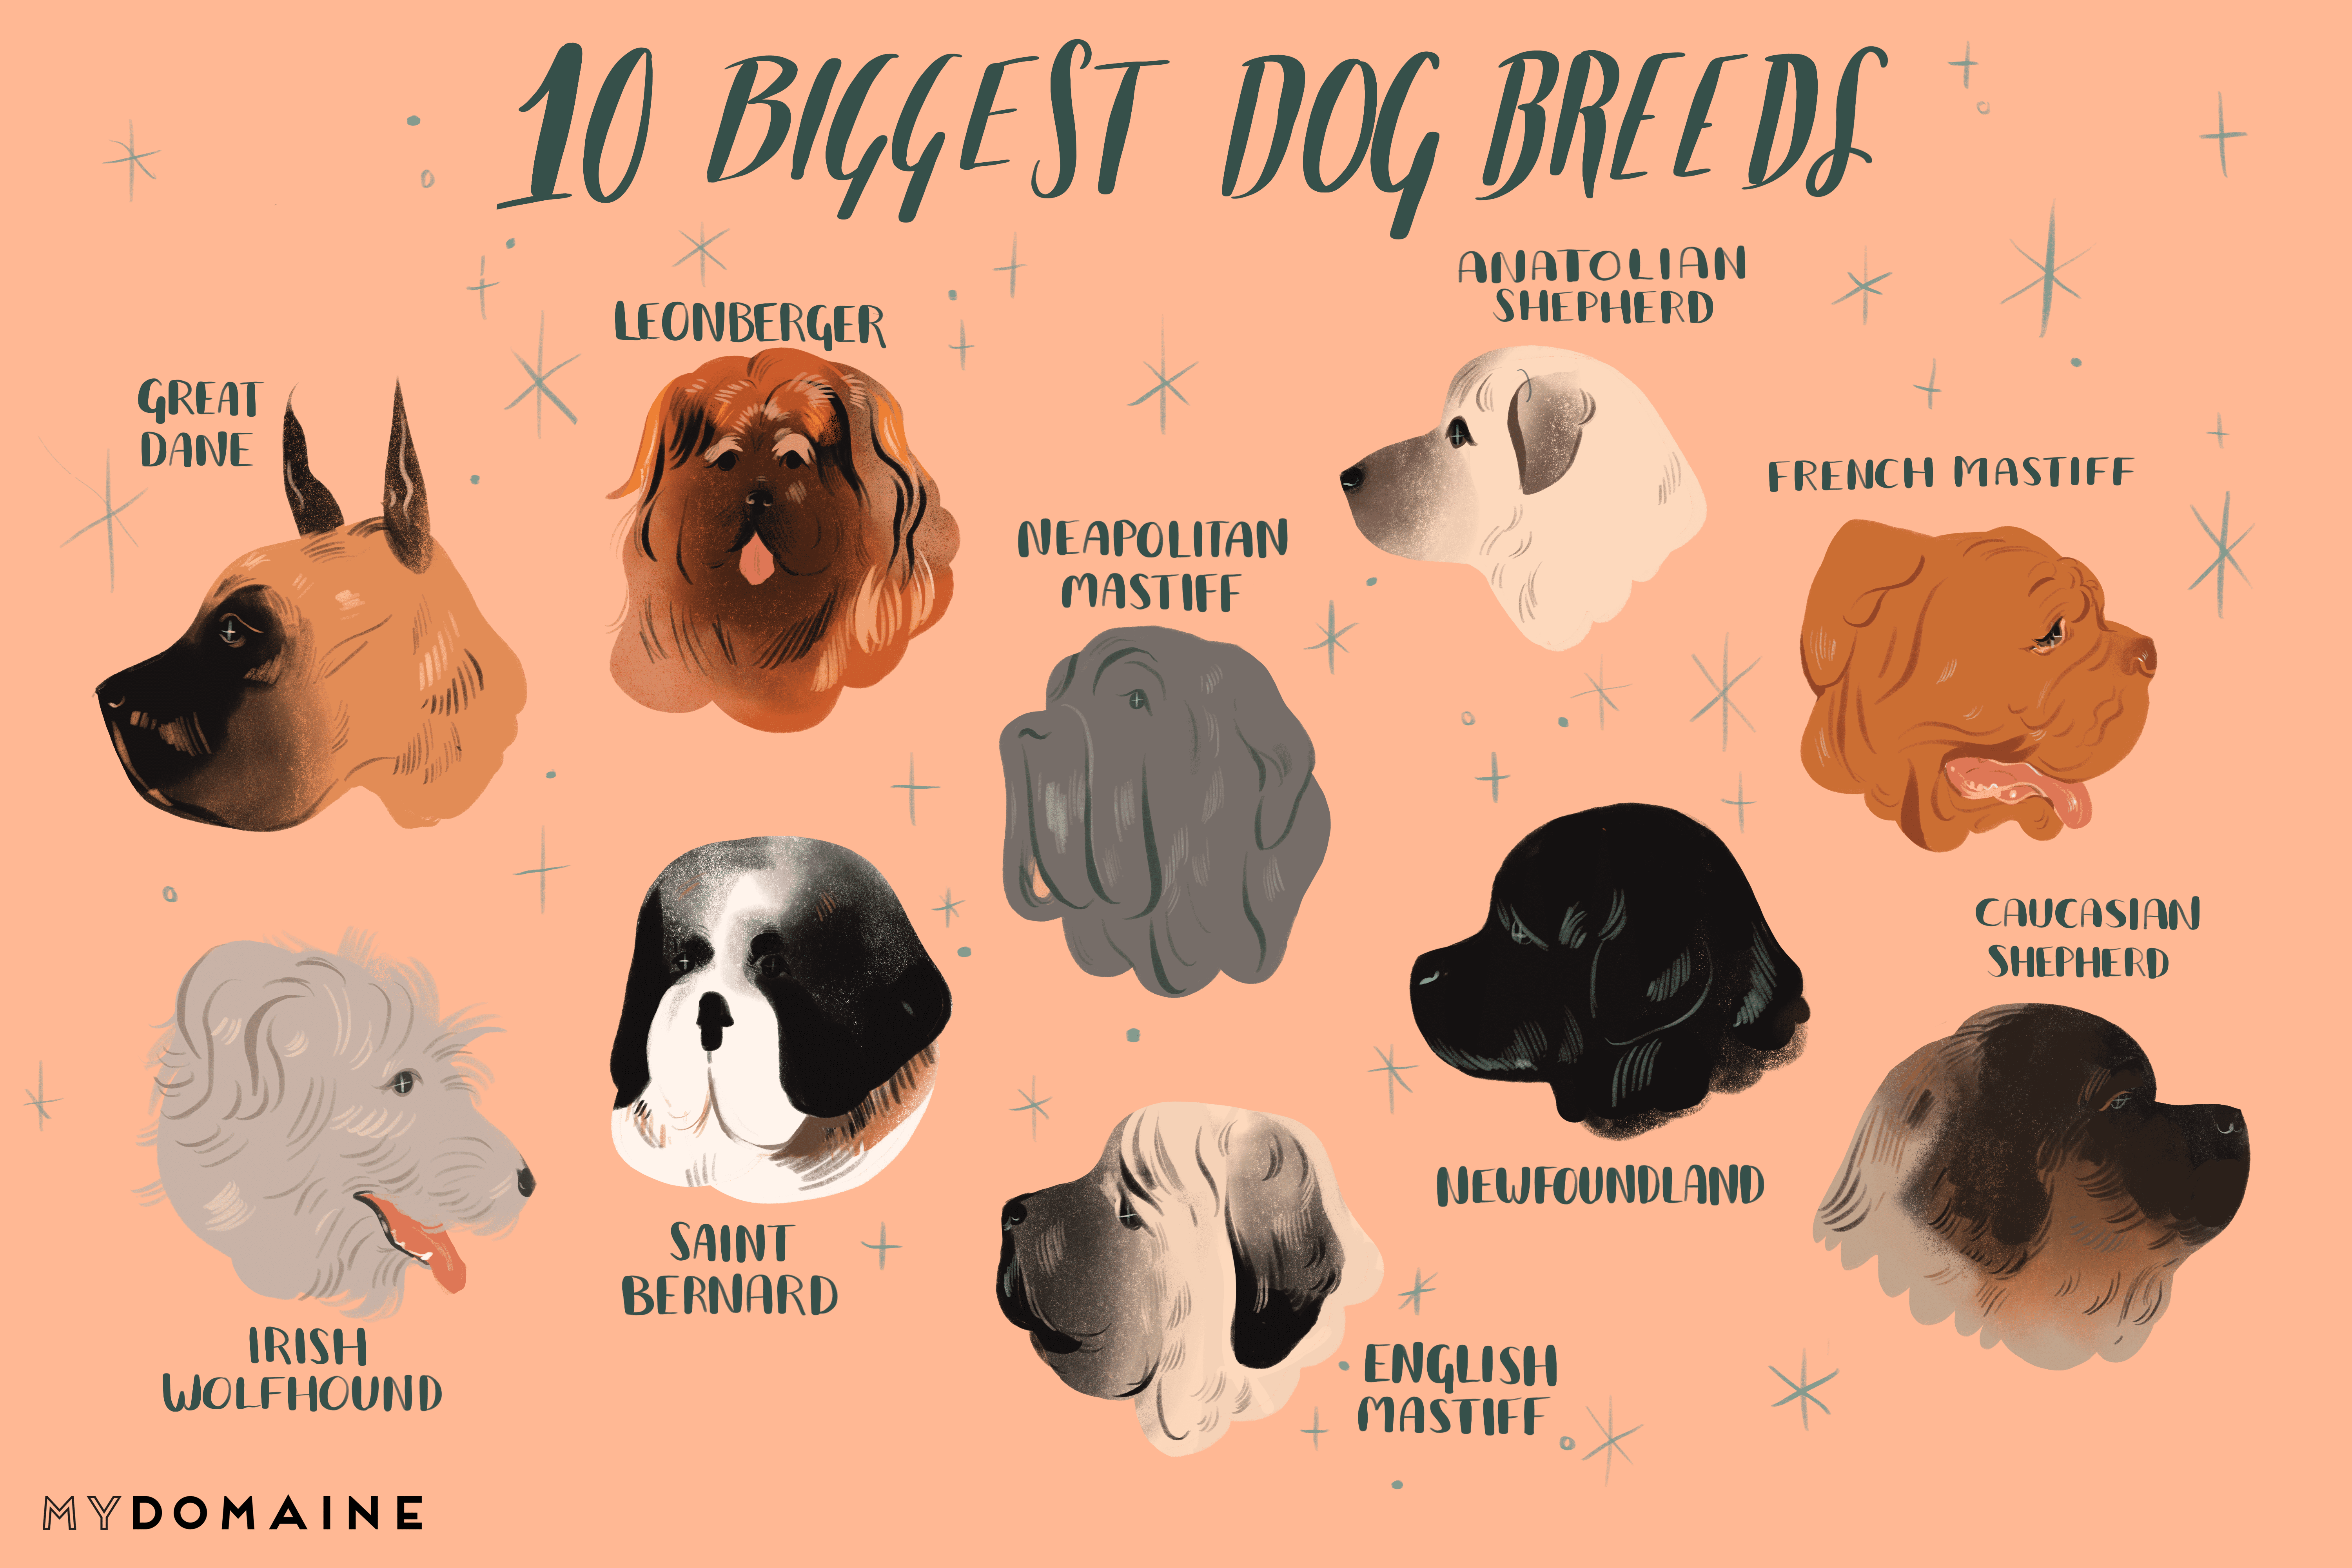 45+ Dog Breeds List With Pictures And Price